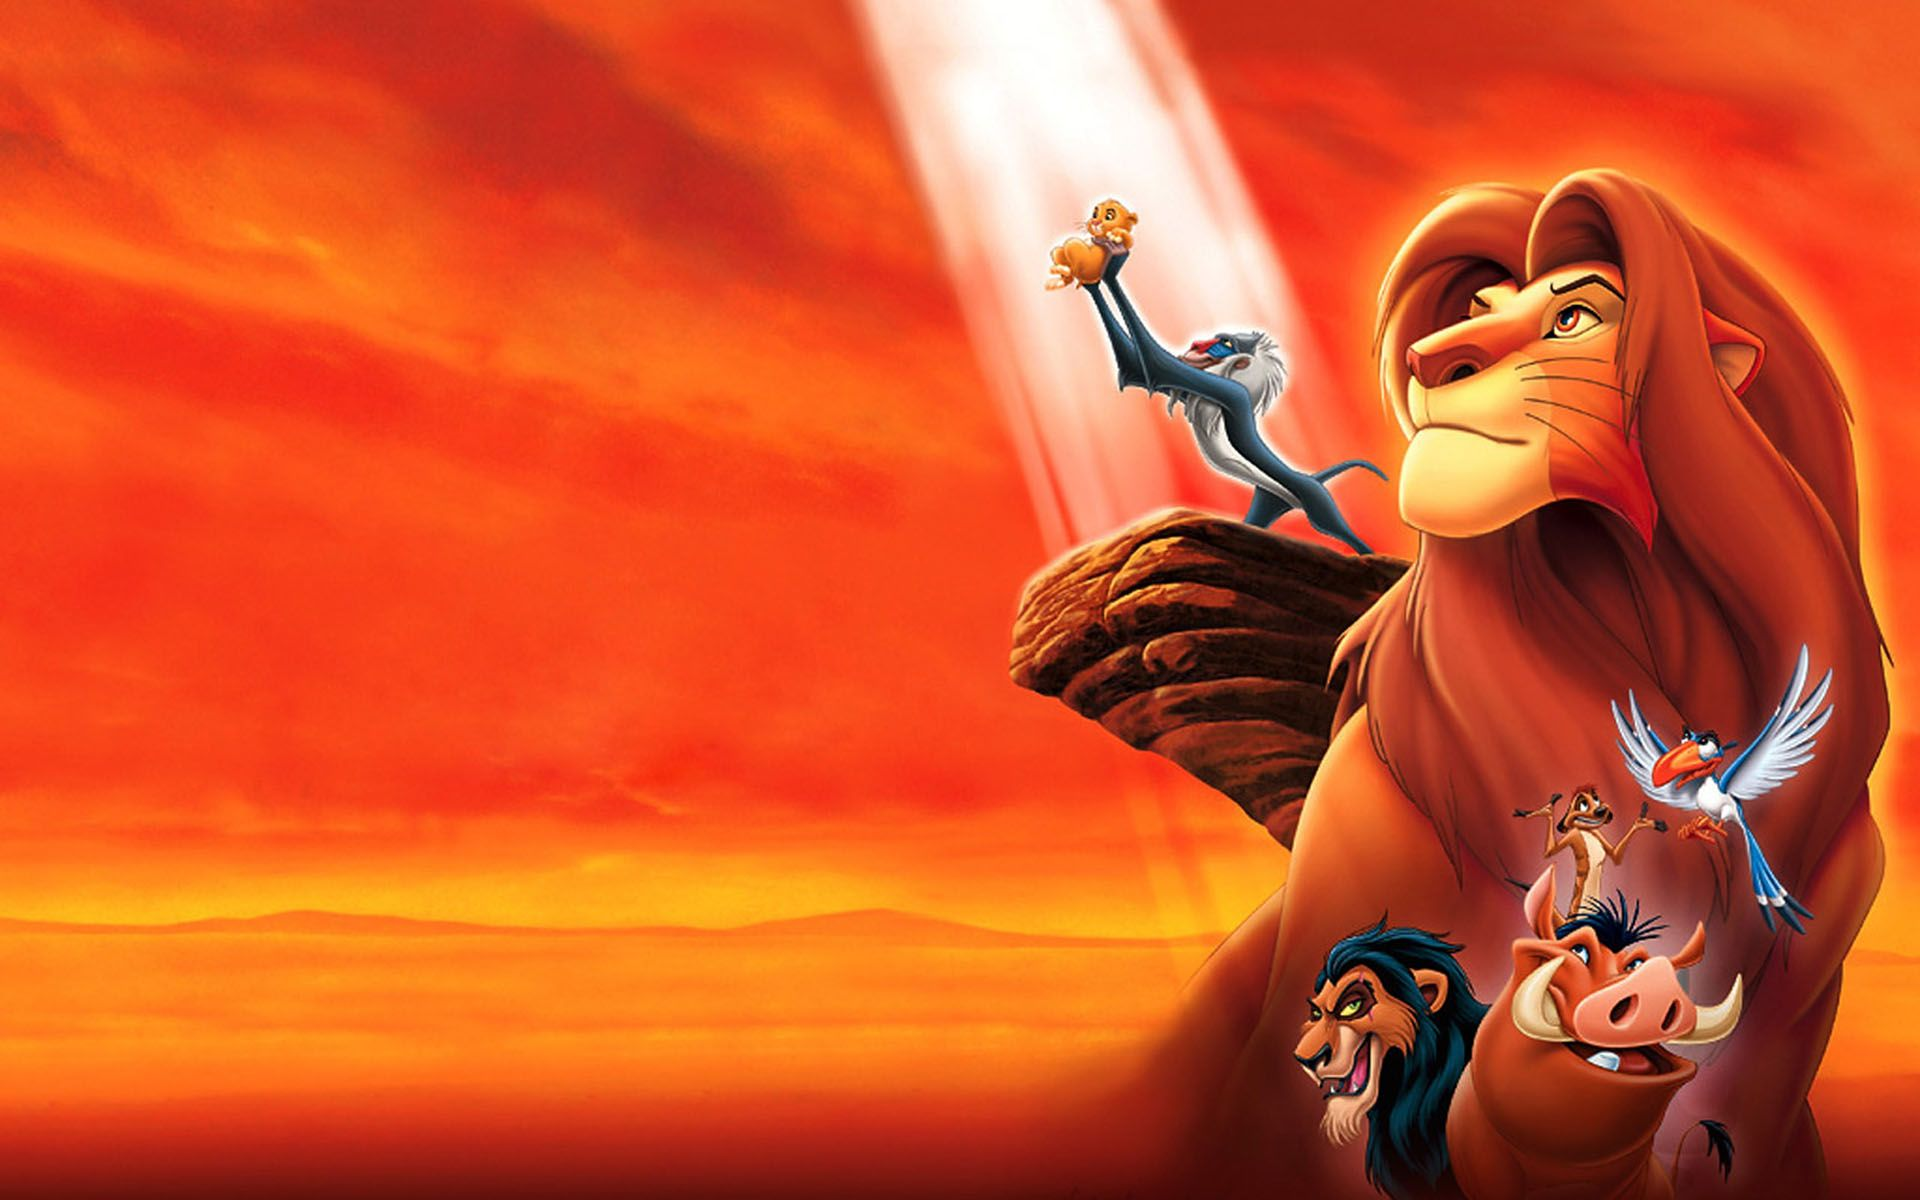 lion king | lion king 612 hd wallpapers | disney | pinterest | lions